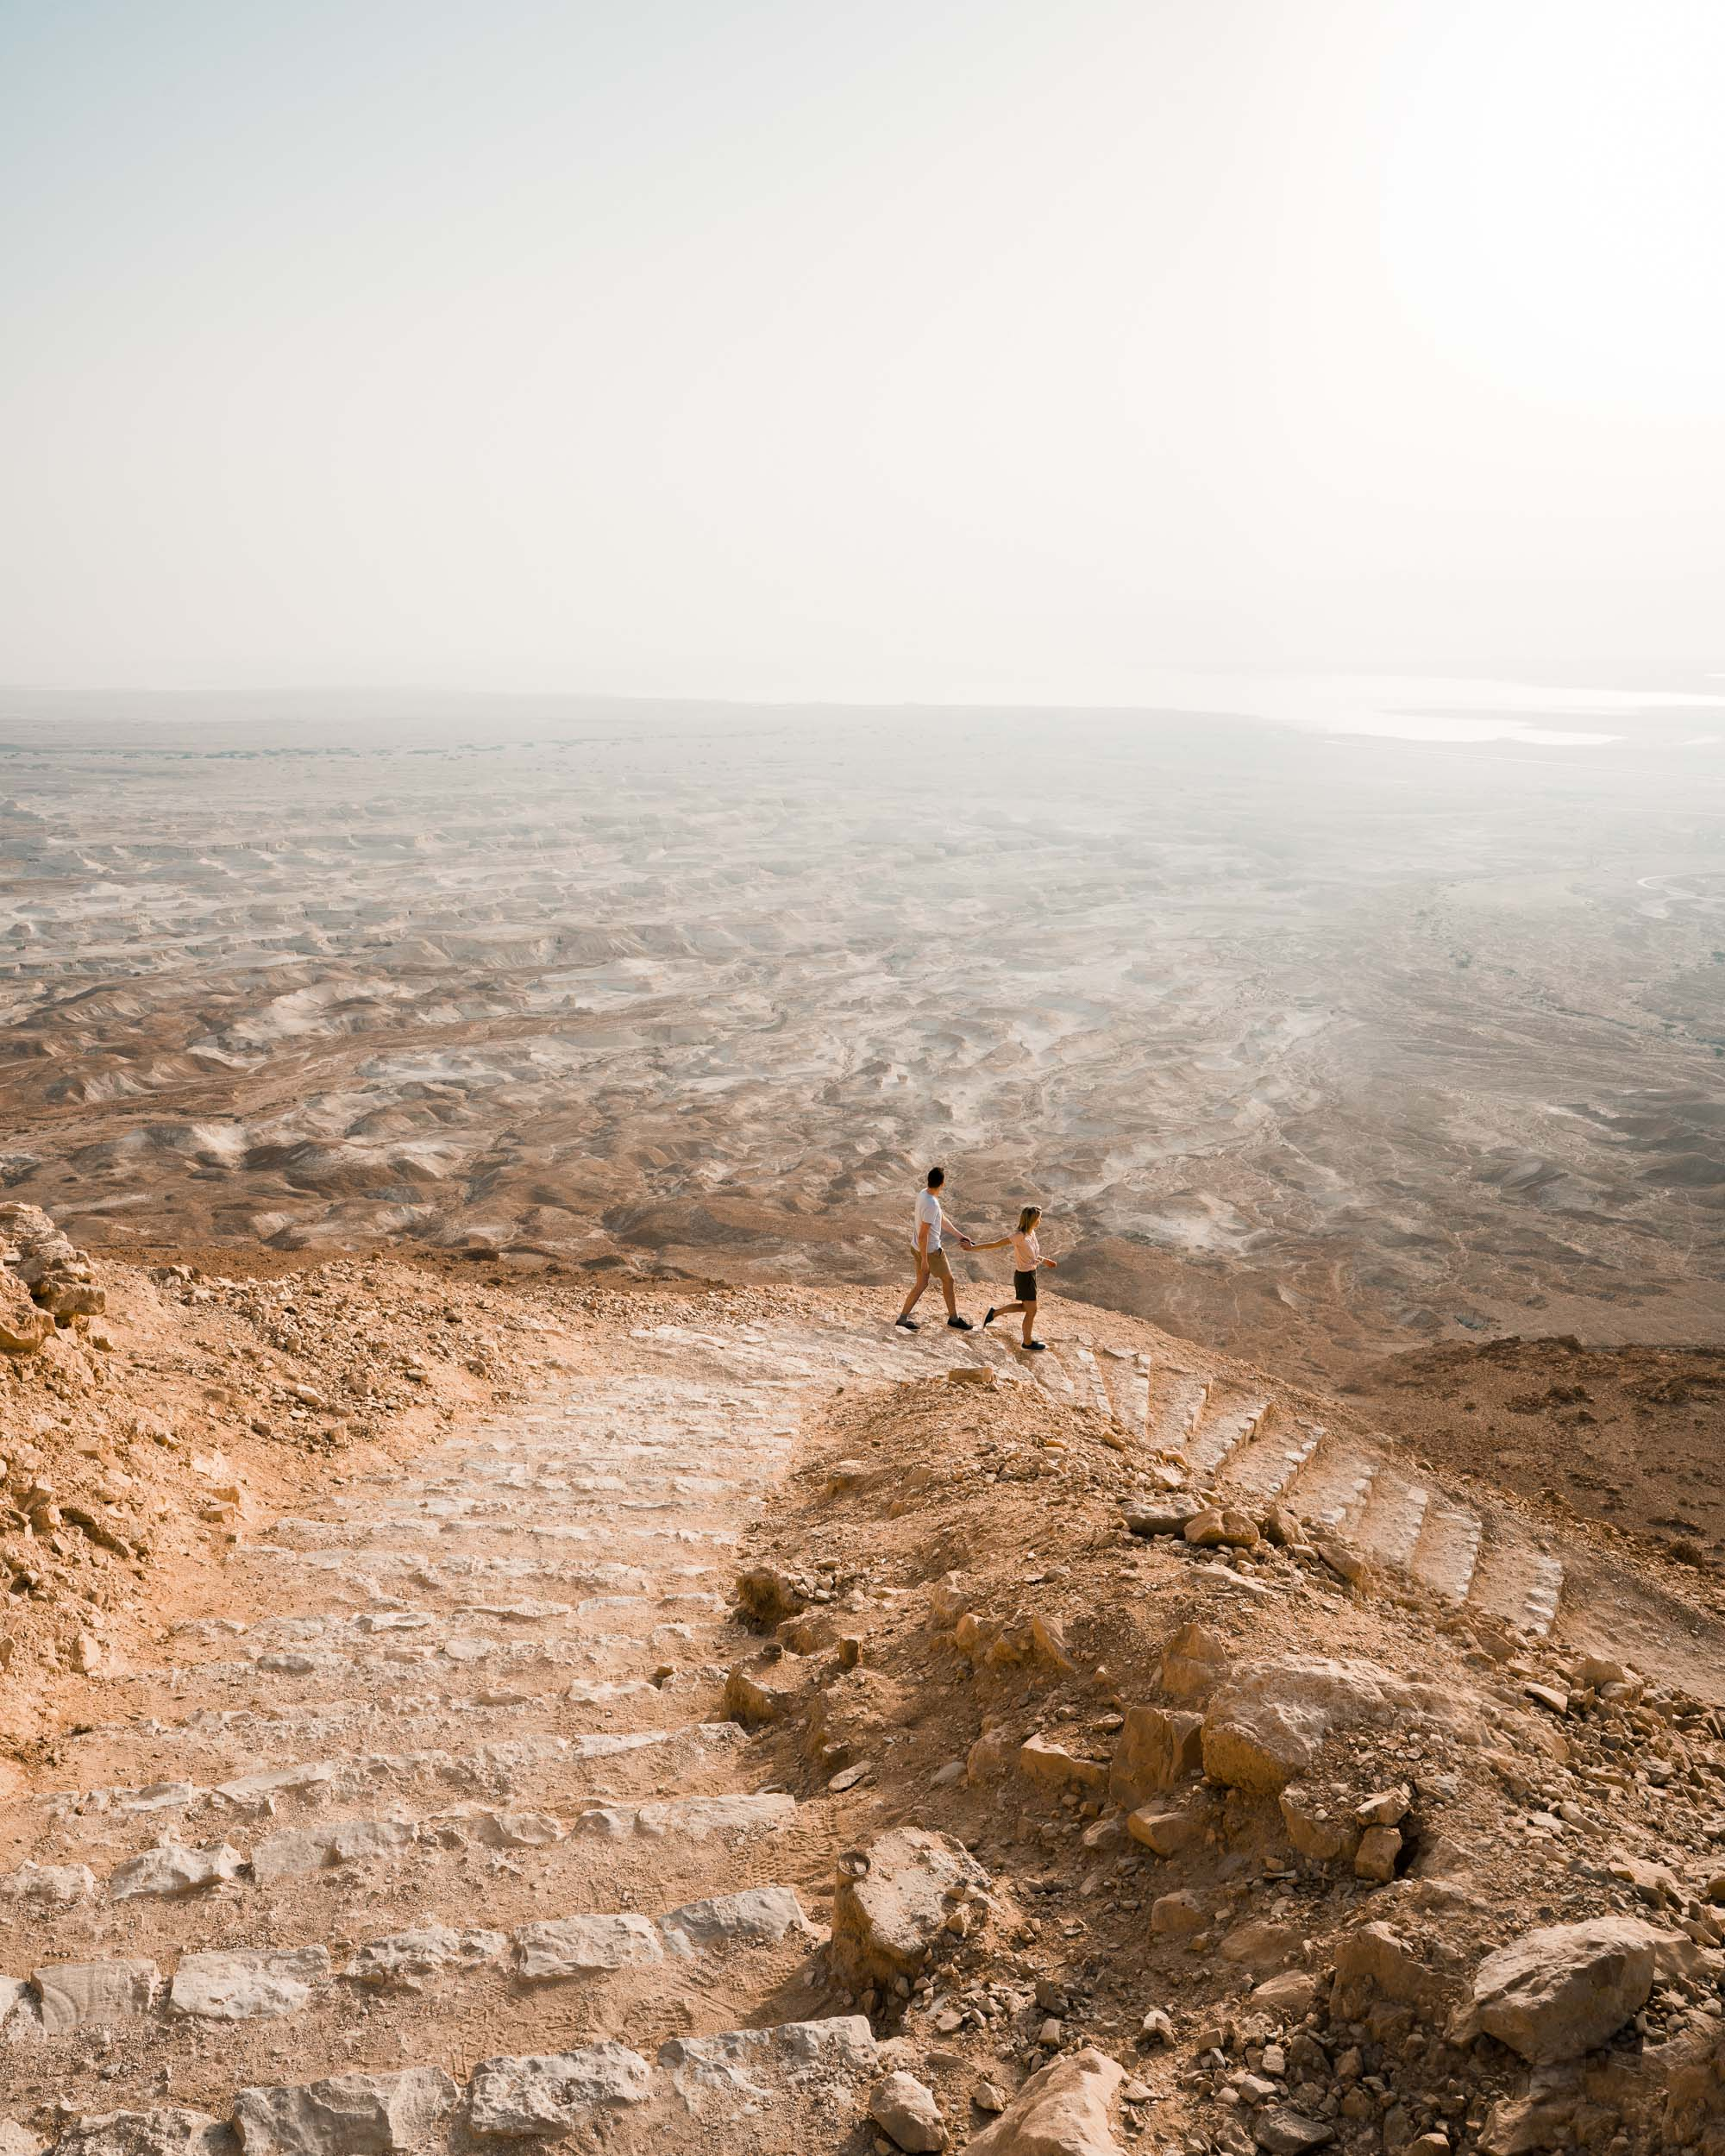 Sunrise over Masada hiking up stairs in the dead sea in Israel